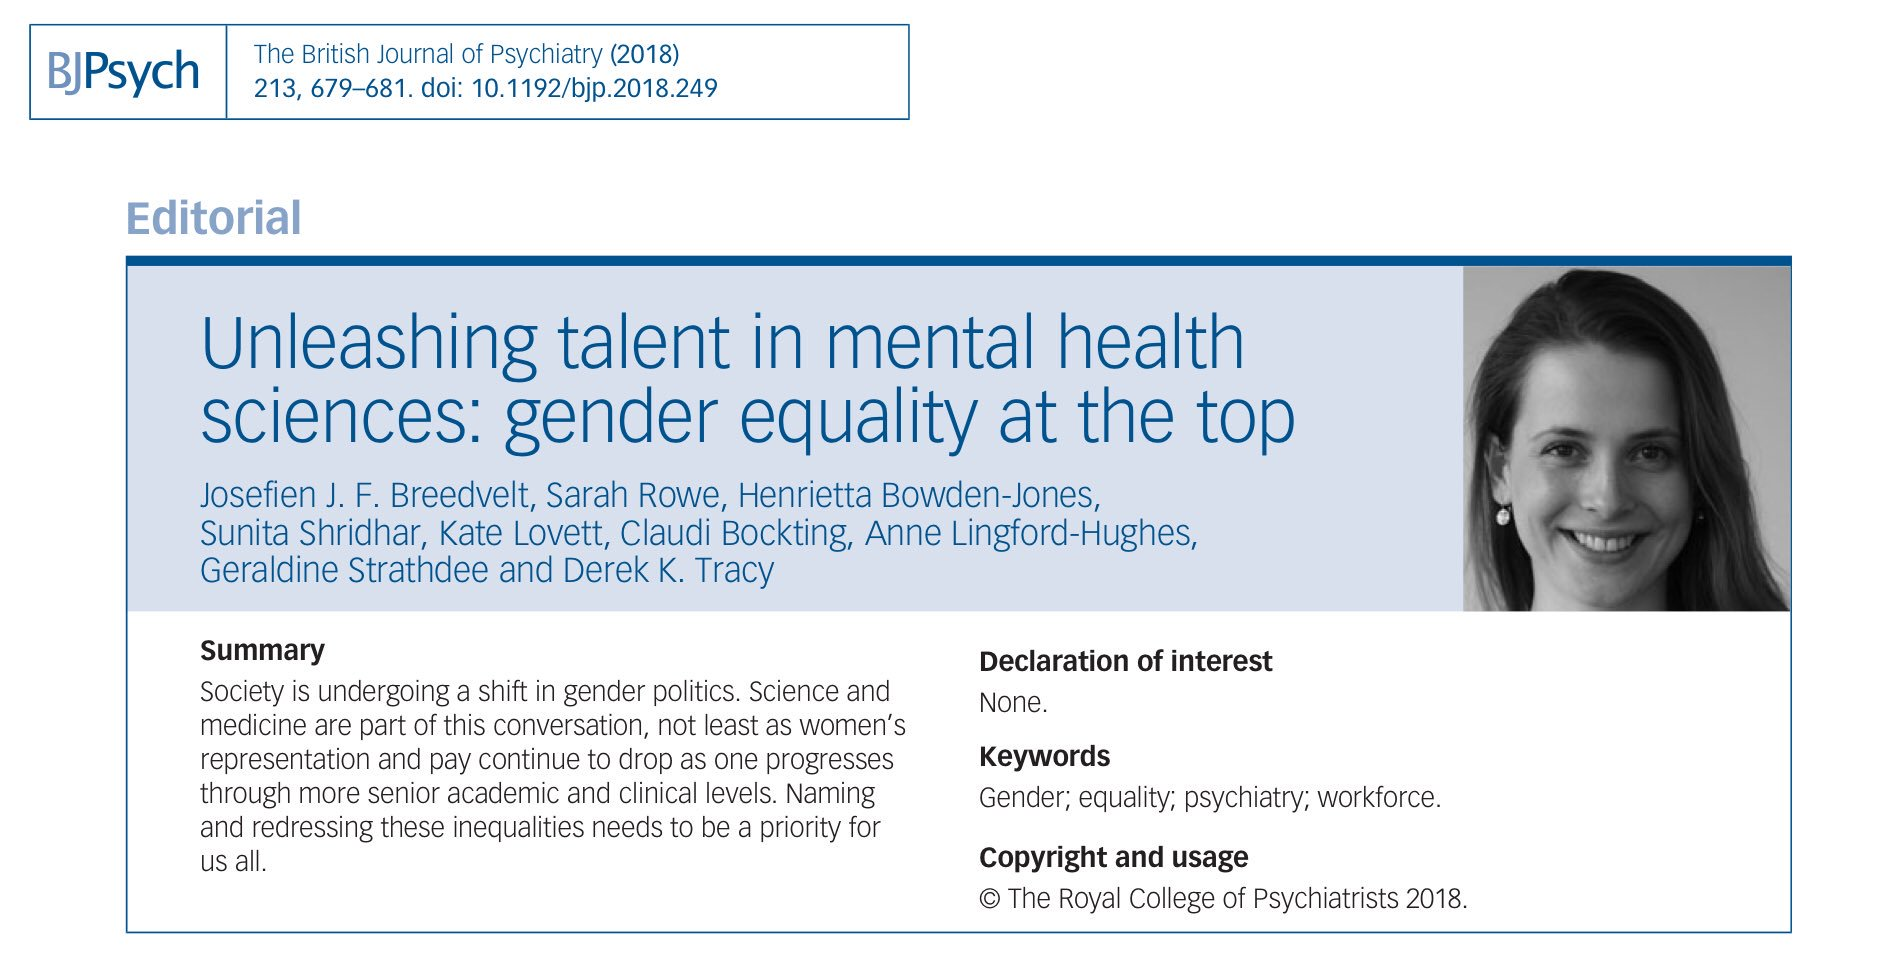 Bjpsych On Twitter Unleashing Talent Gender Equality In Mental